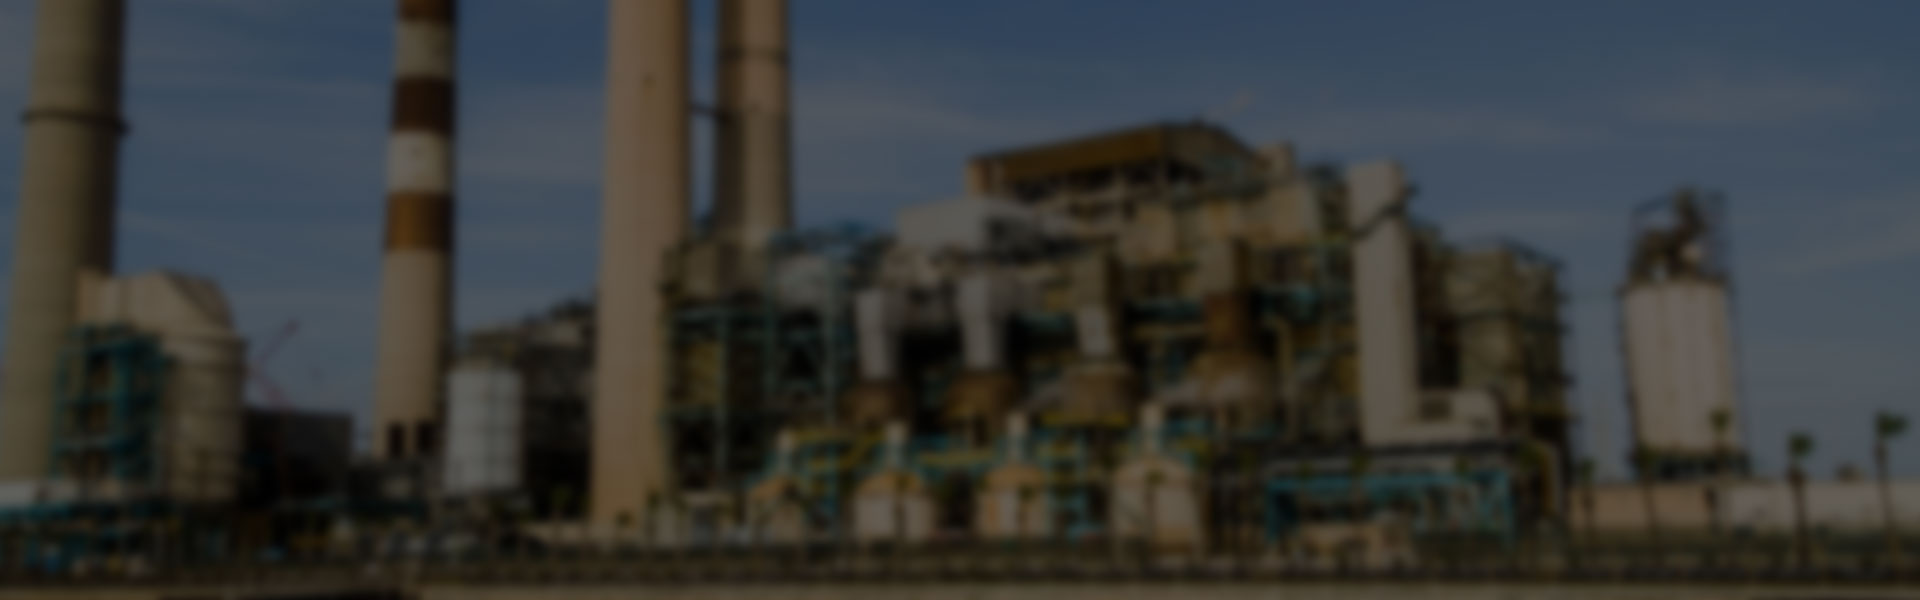 OIL & GAS - Infinite Staffing Solutions